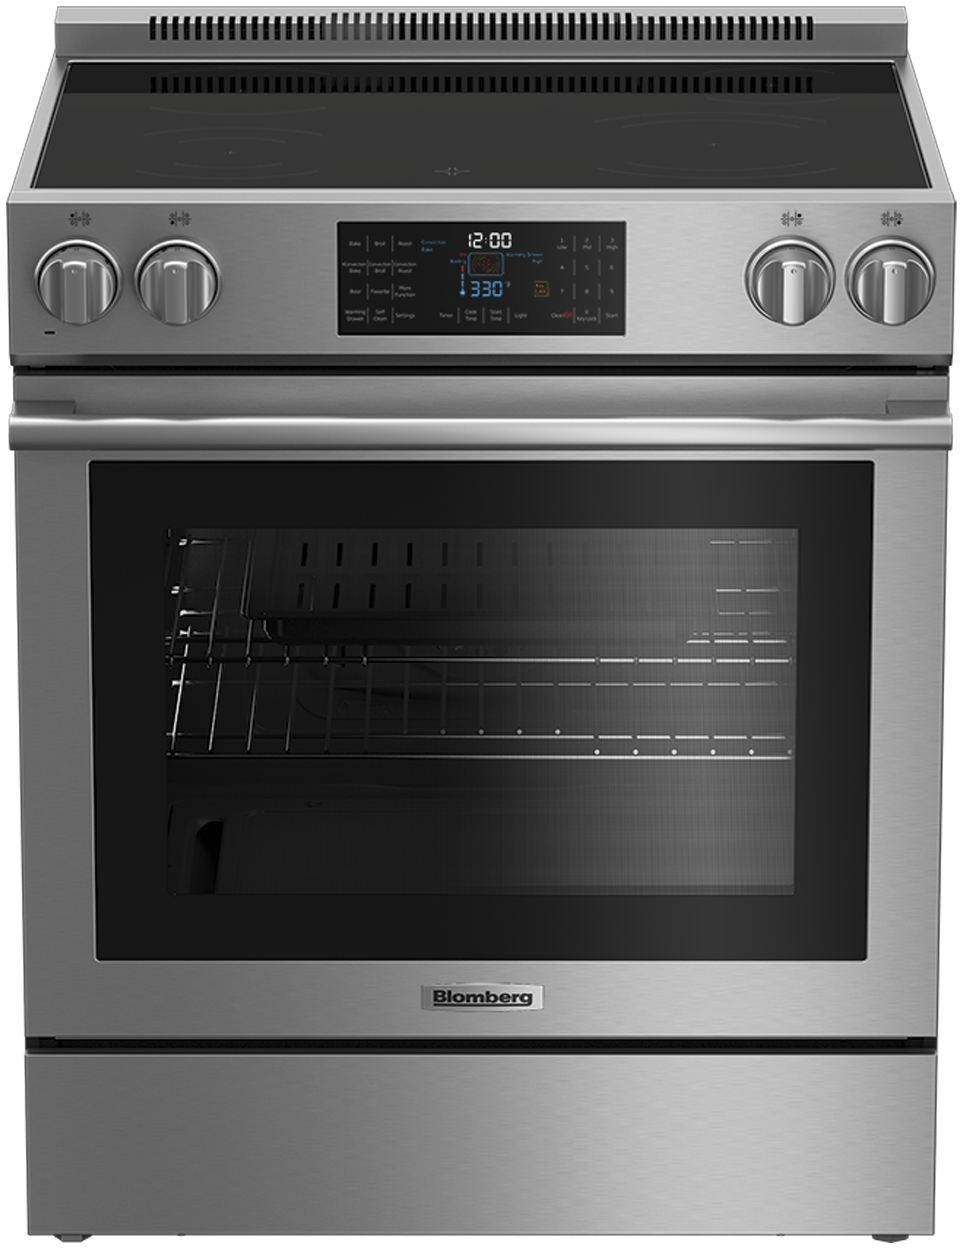 Blomberg Beru30420ss 30 Inch Freestanding Electric Range With Convection Oven 10 Cooking Modes Self Clean Function 5 7 Cu Ft